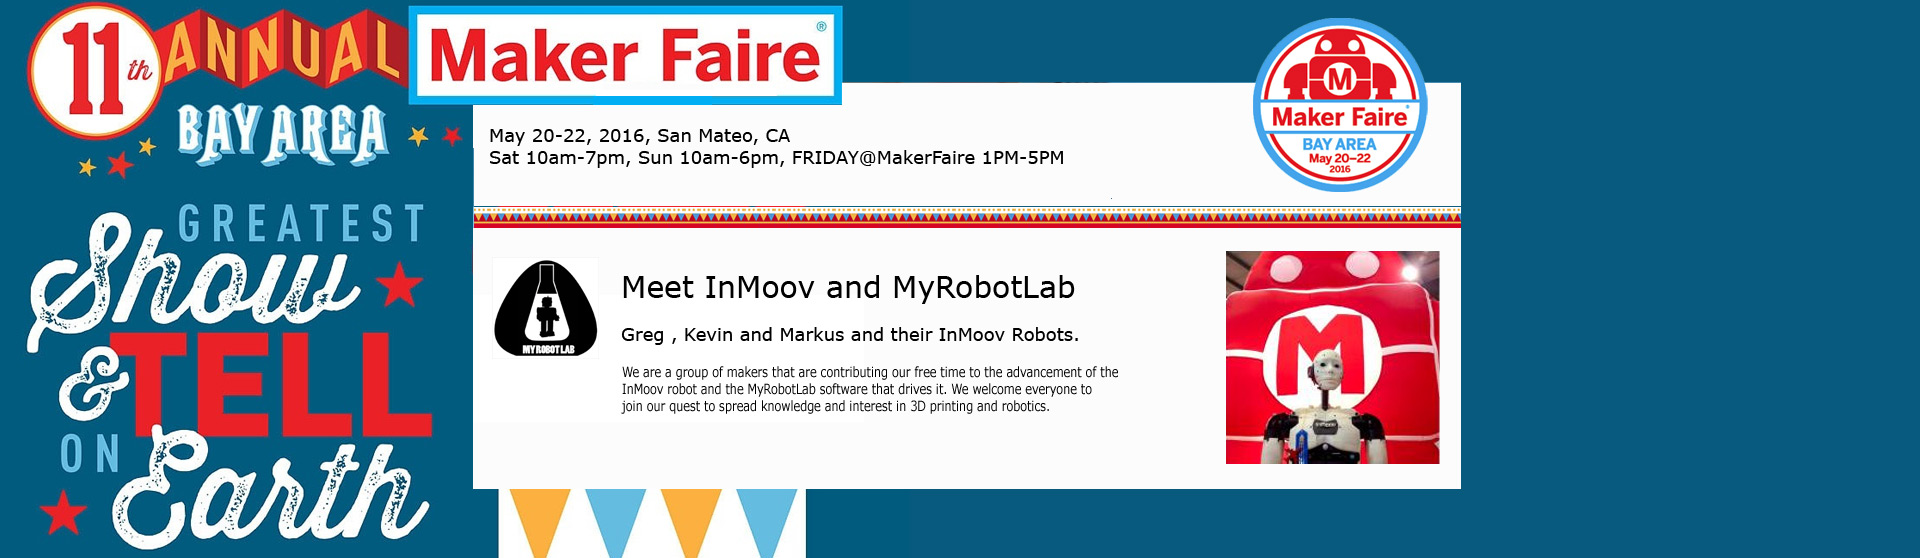 bay-area2016-inmoov-2